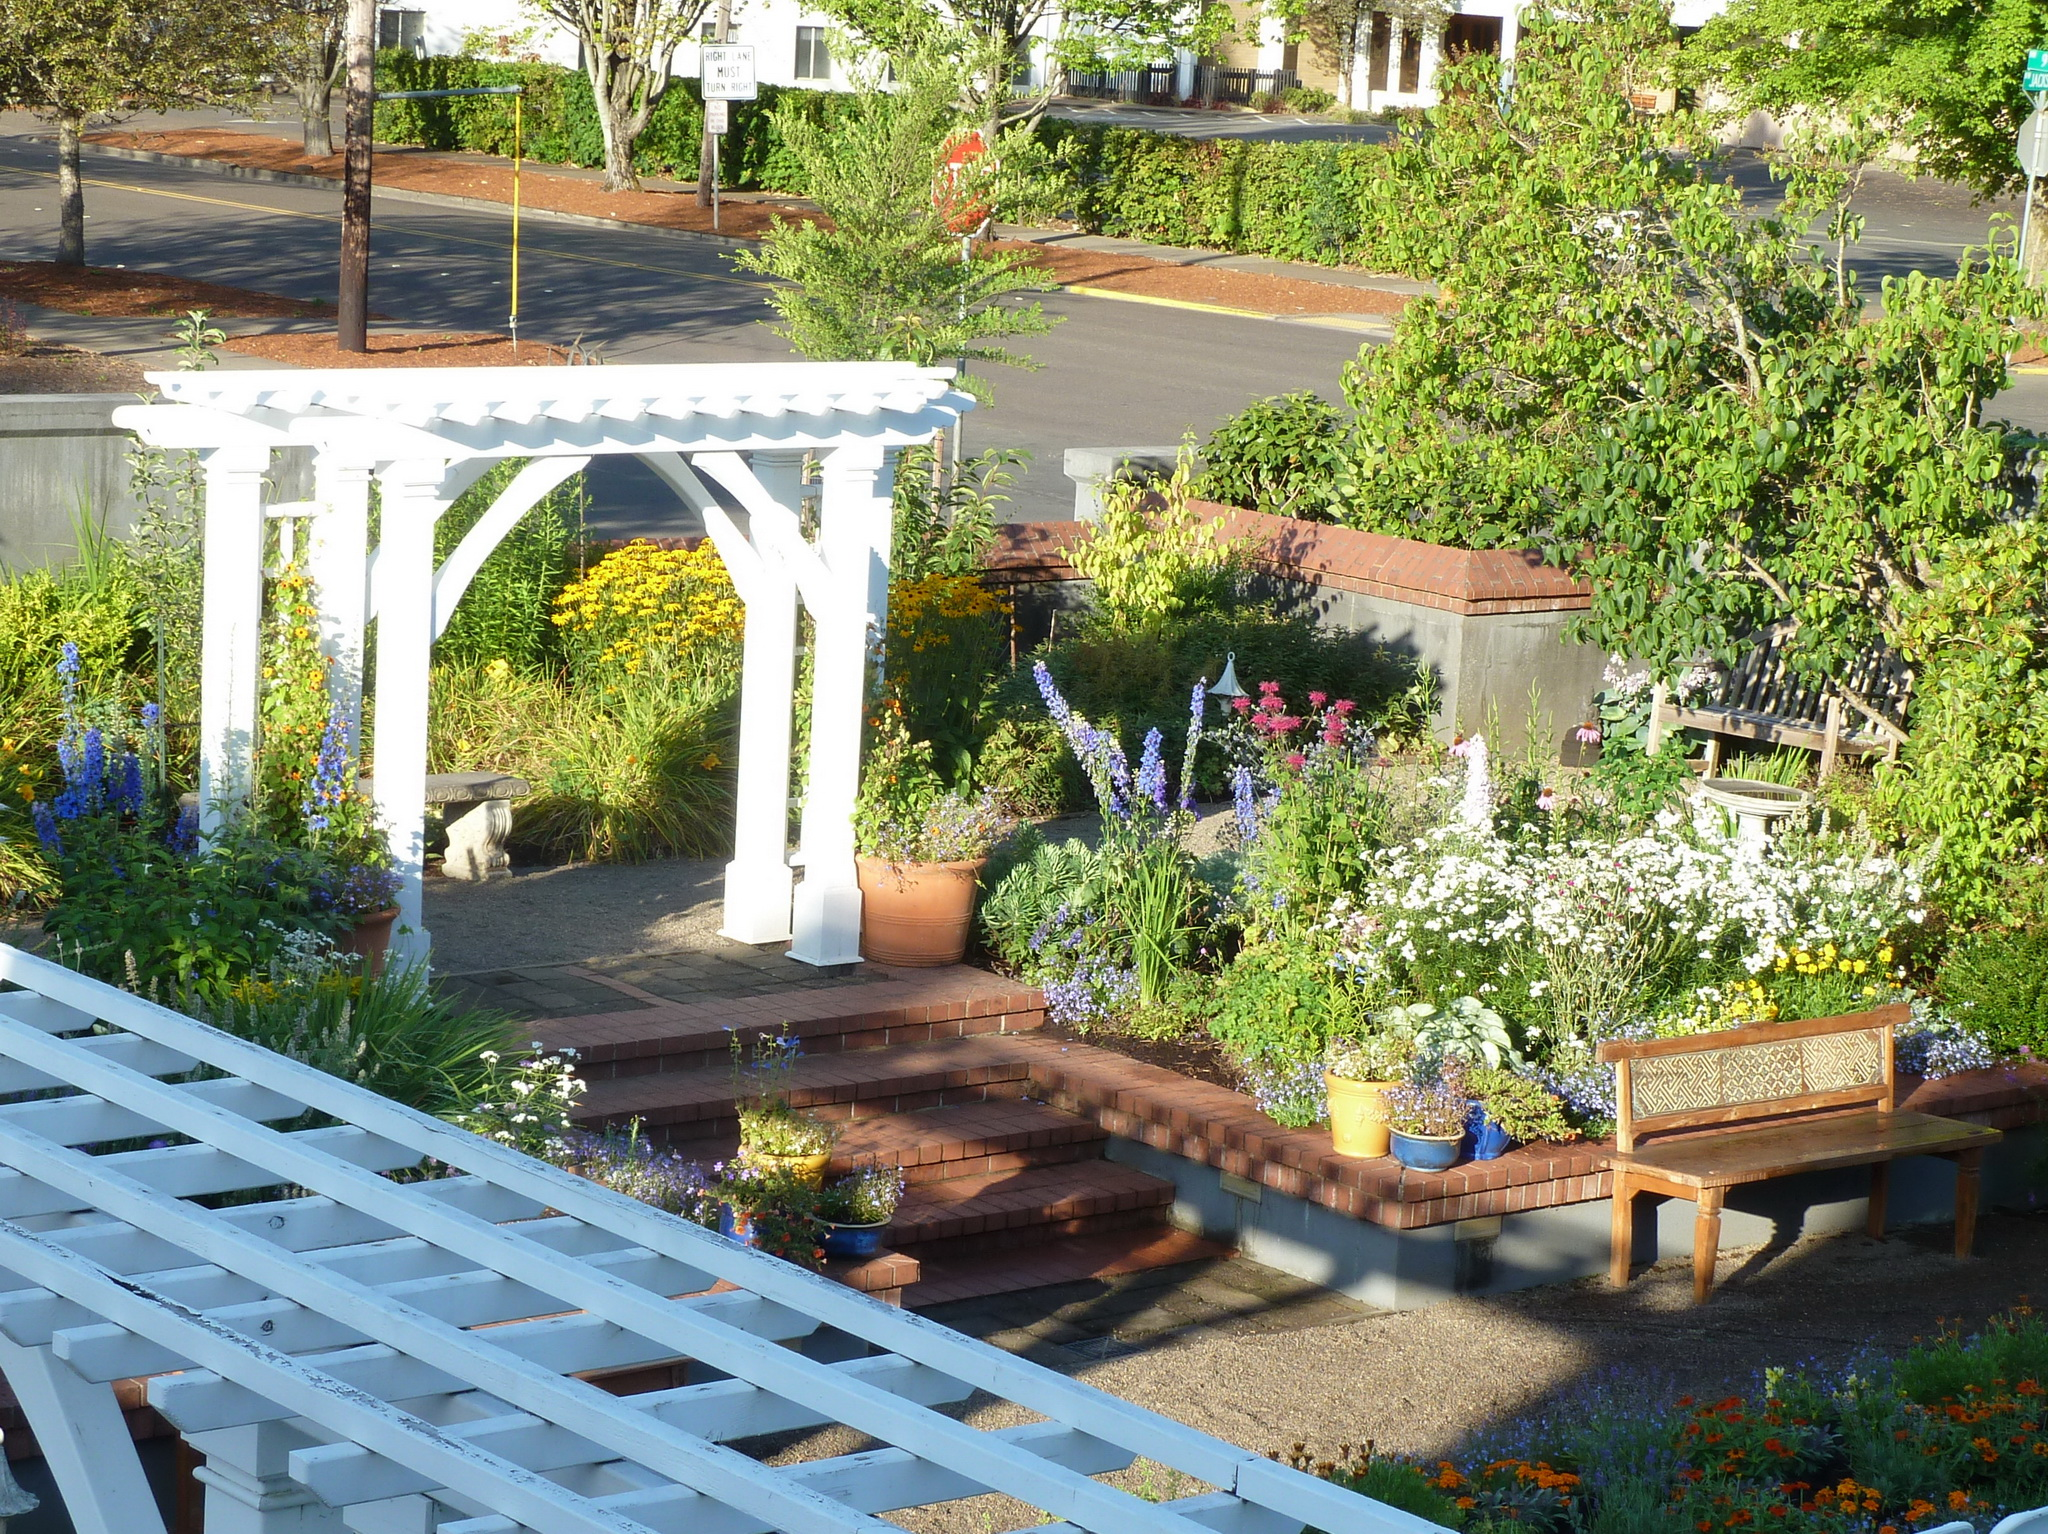 206 NW 8th Street, Corvallis, Oregon-View from Carriage House